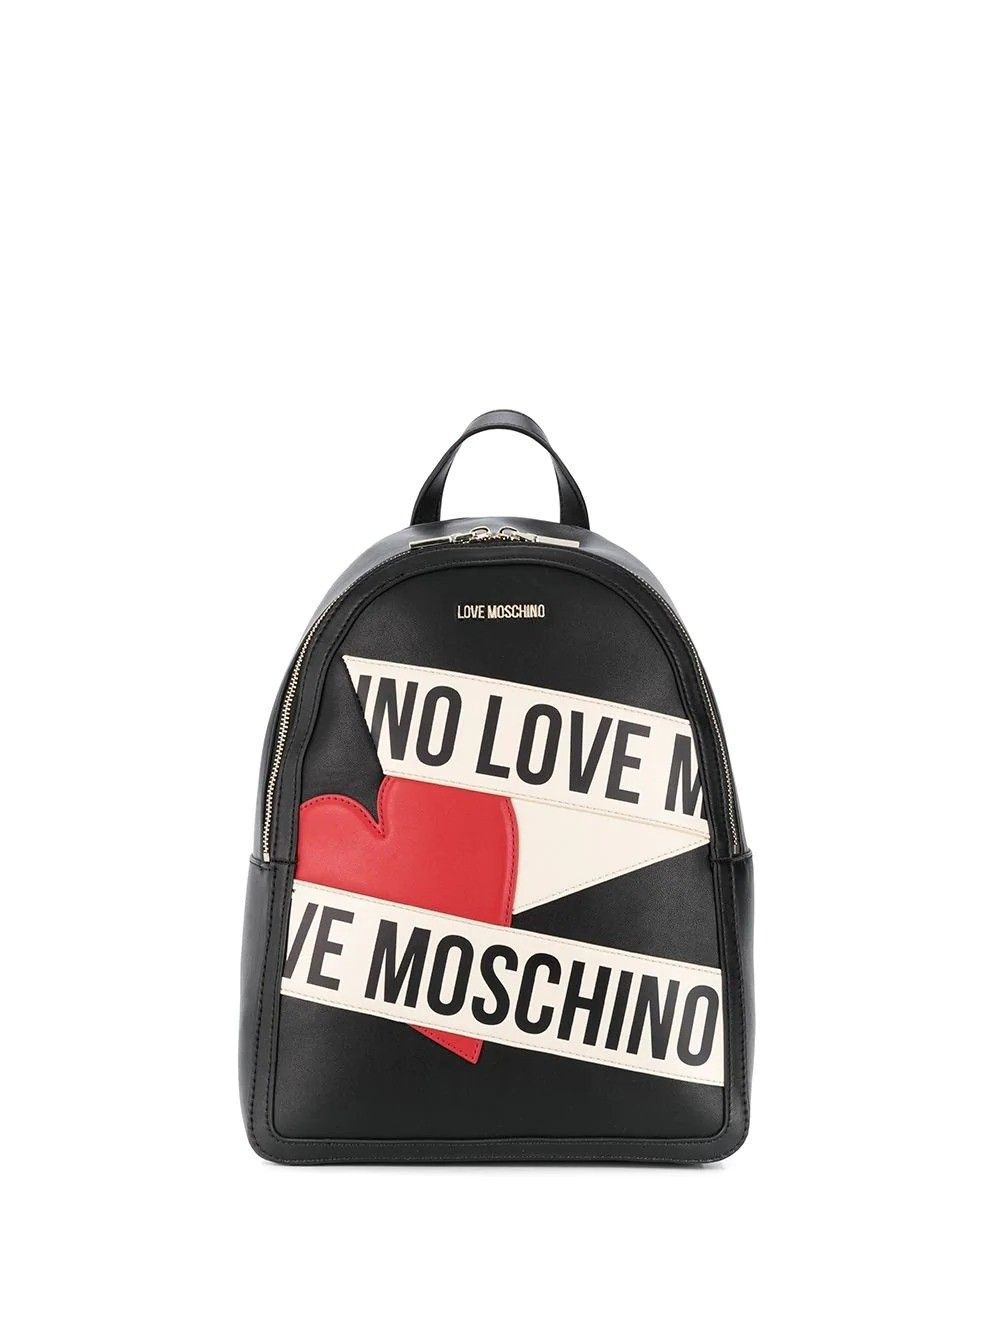 LOVE MOSCHINO LOVE MOSCHINO WOMEN'S BLACK FAUX LEATHER BACKPACK